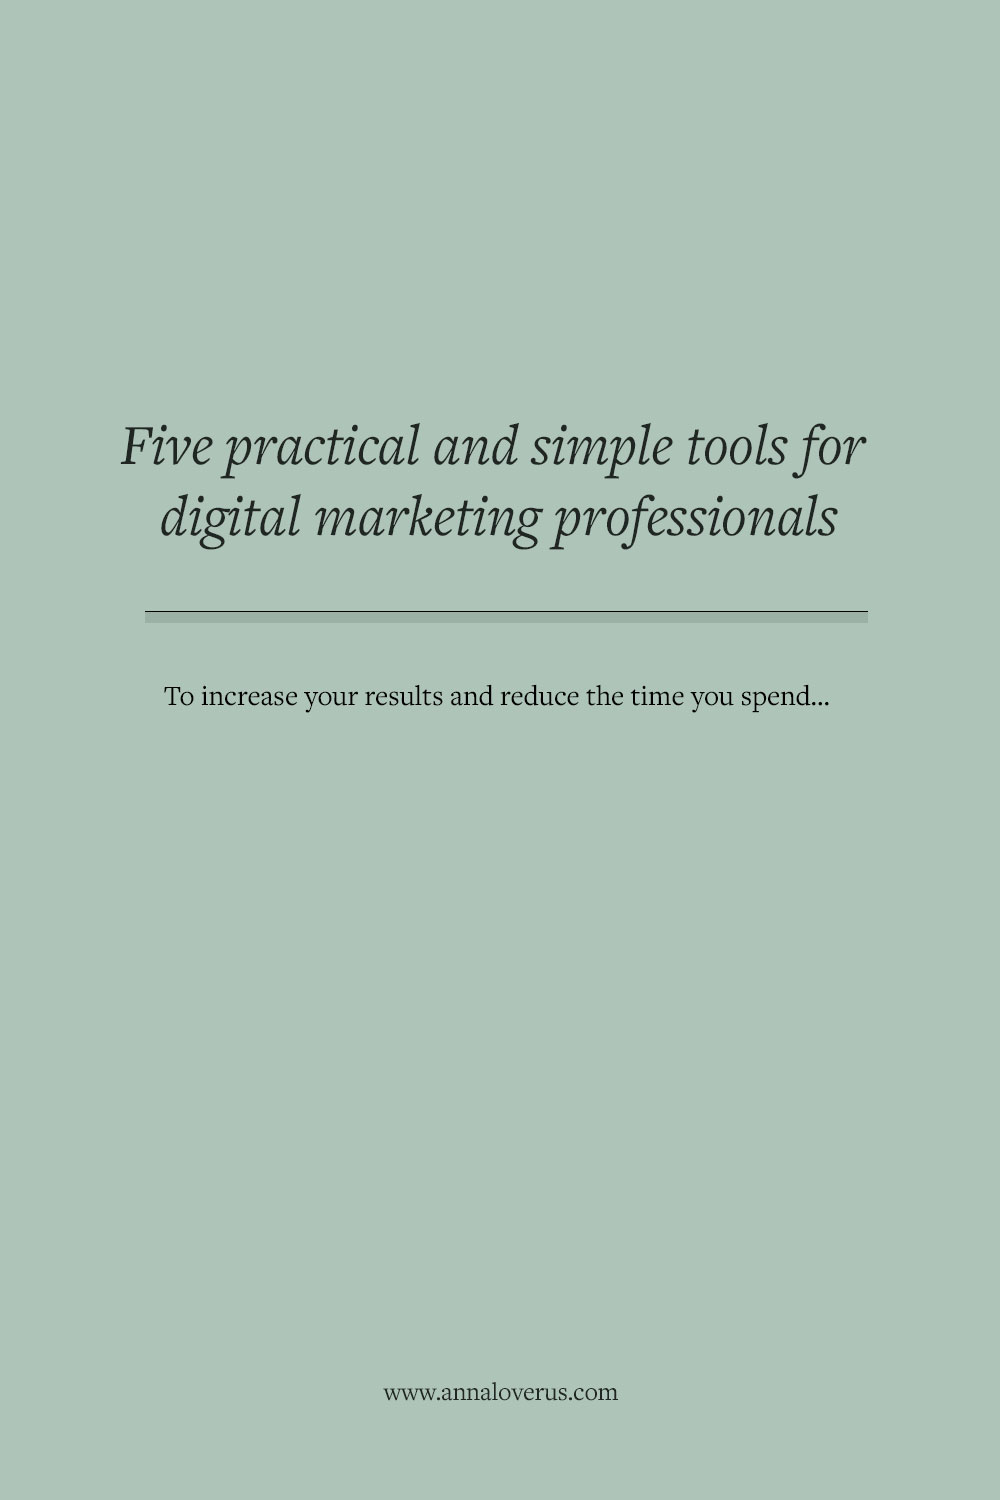 The right tools for digital marketing professionals can make a big difference to your results – and your workday. Here are five smart tools you should try.